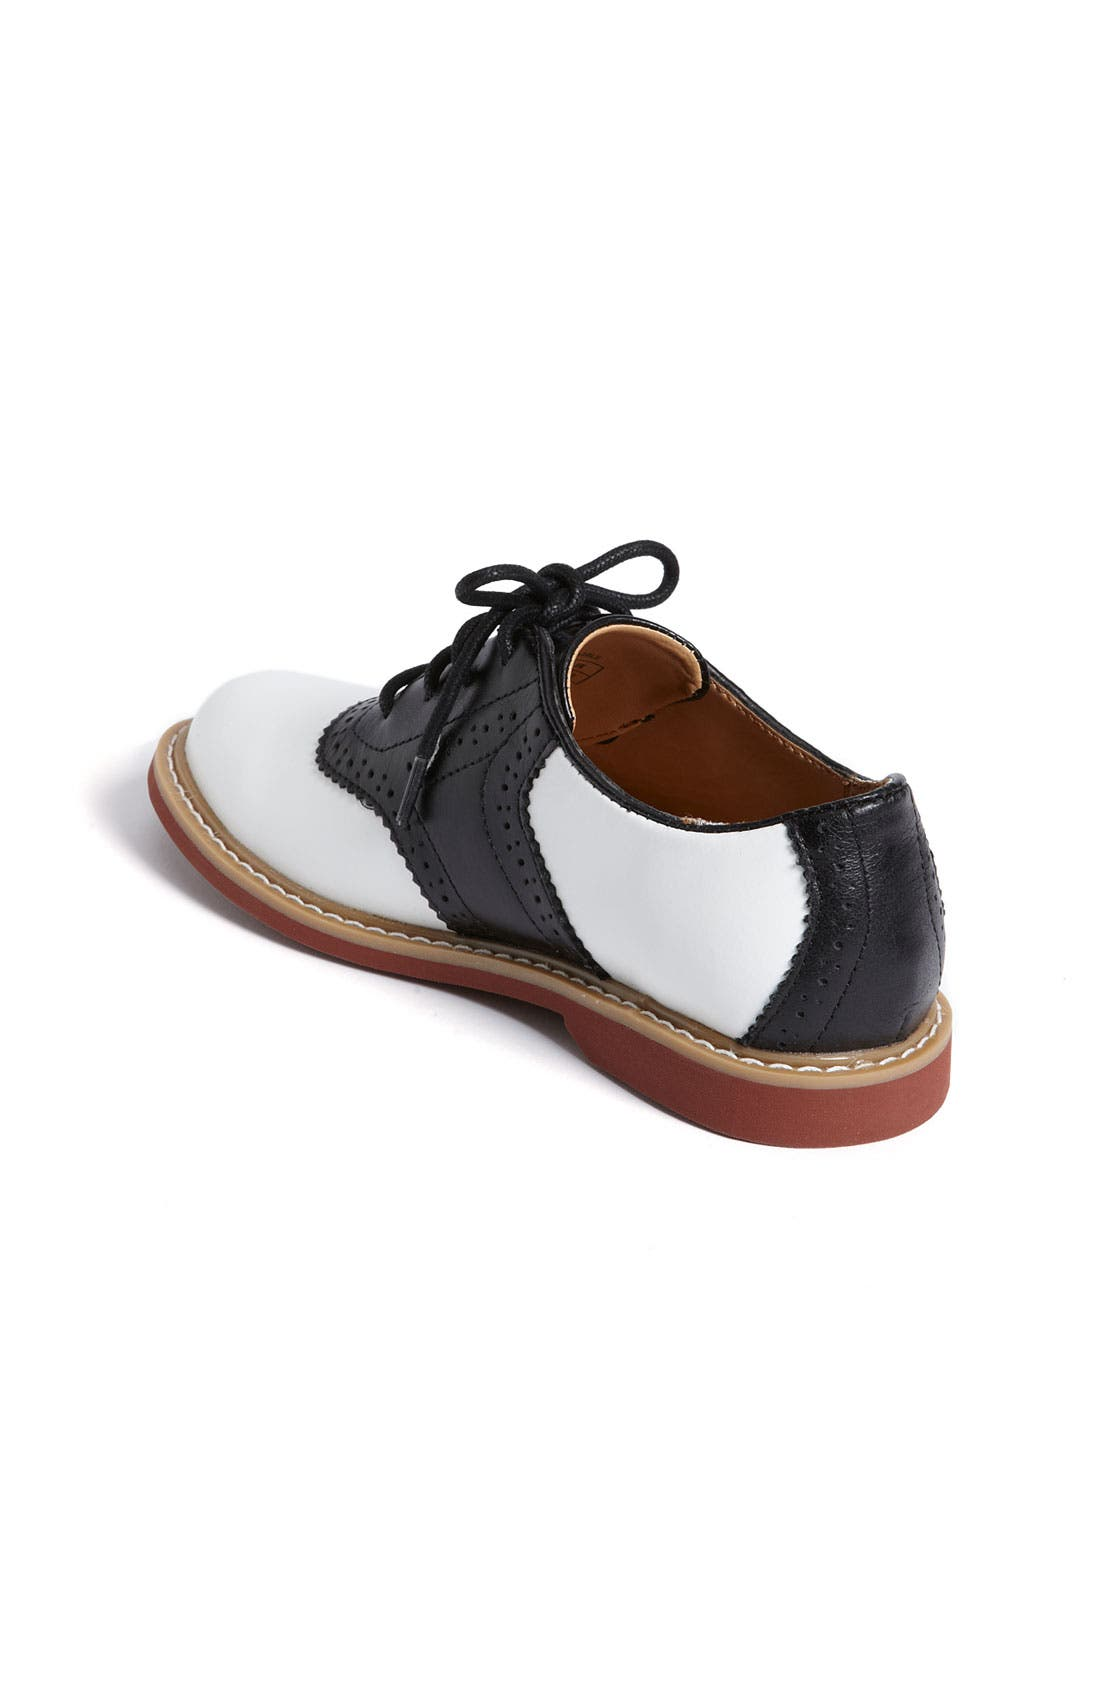 Alternate Image 2  - Cole Haan 'Air Franklin' Saddle Shoes (Toddler, Little Kid & Big Kid)